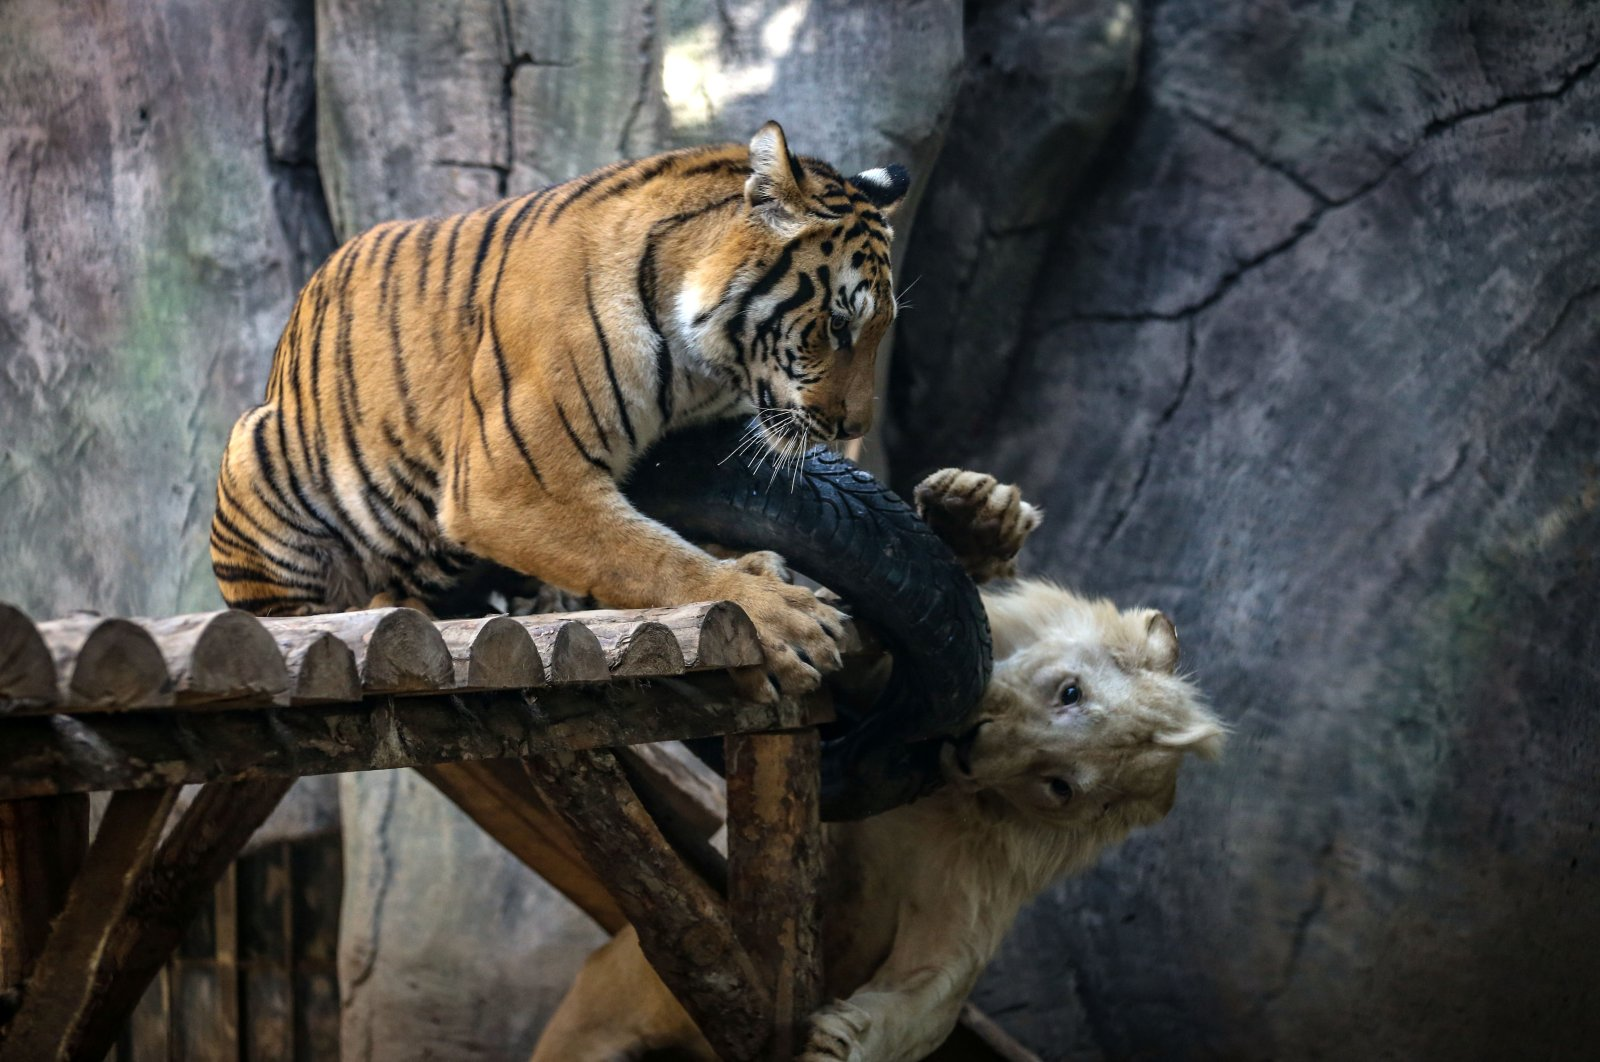 The white lion called Pamuk and the Bengal tiger called Toby became inseparable friends. (AA Photo)